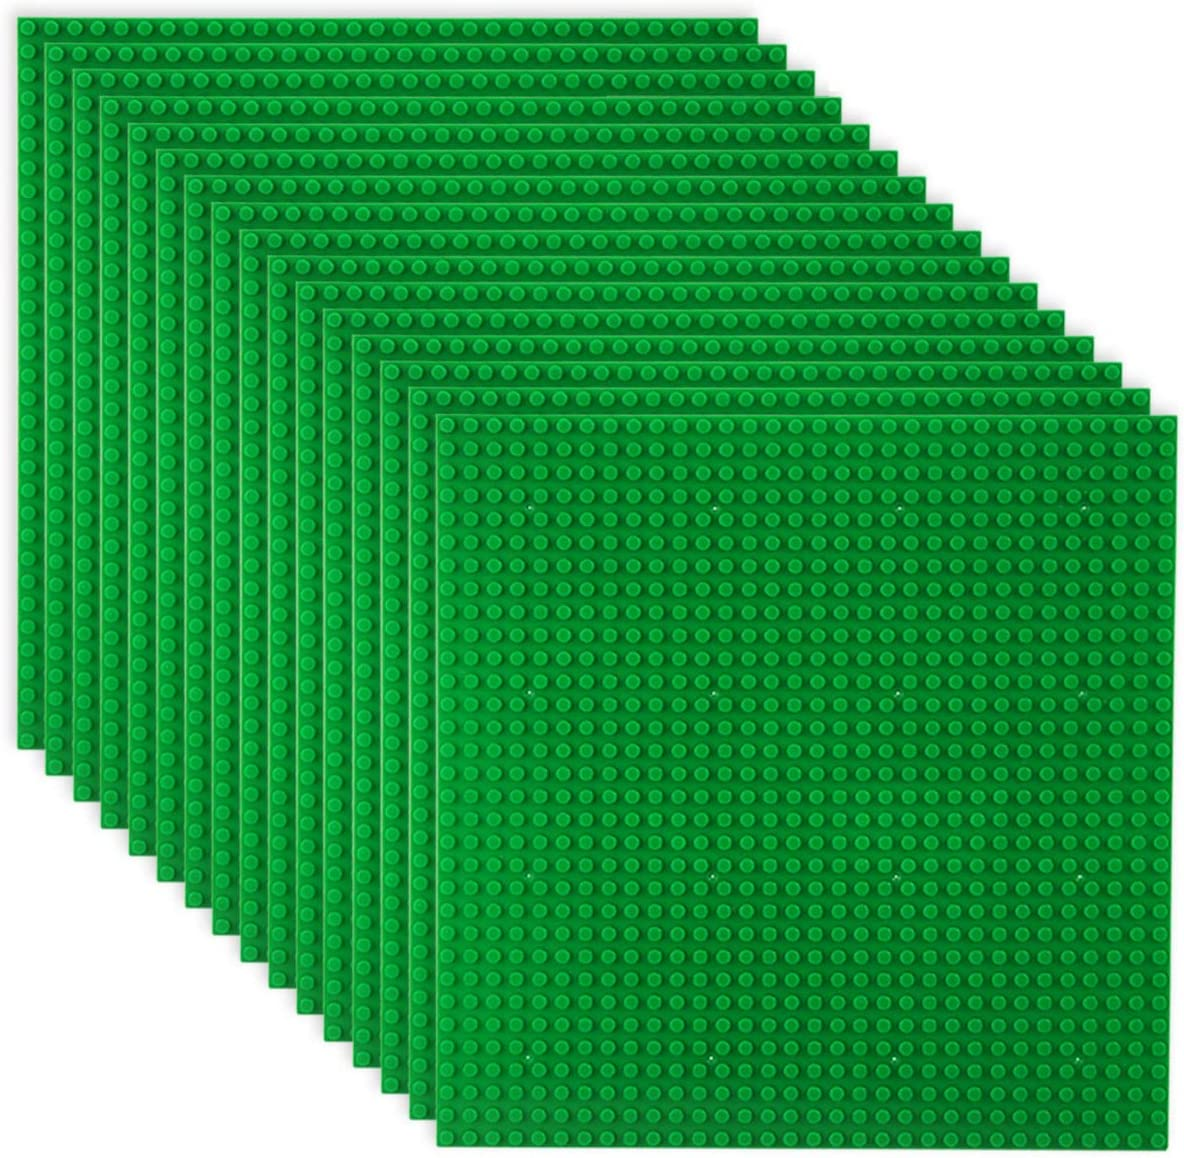 LVHERO Classic Super sale period limited Baseplates Building 10 Plates Bricks 70% OFF Outlet for